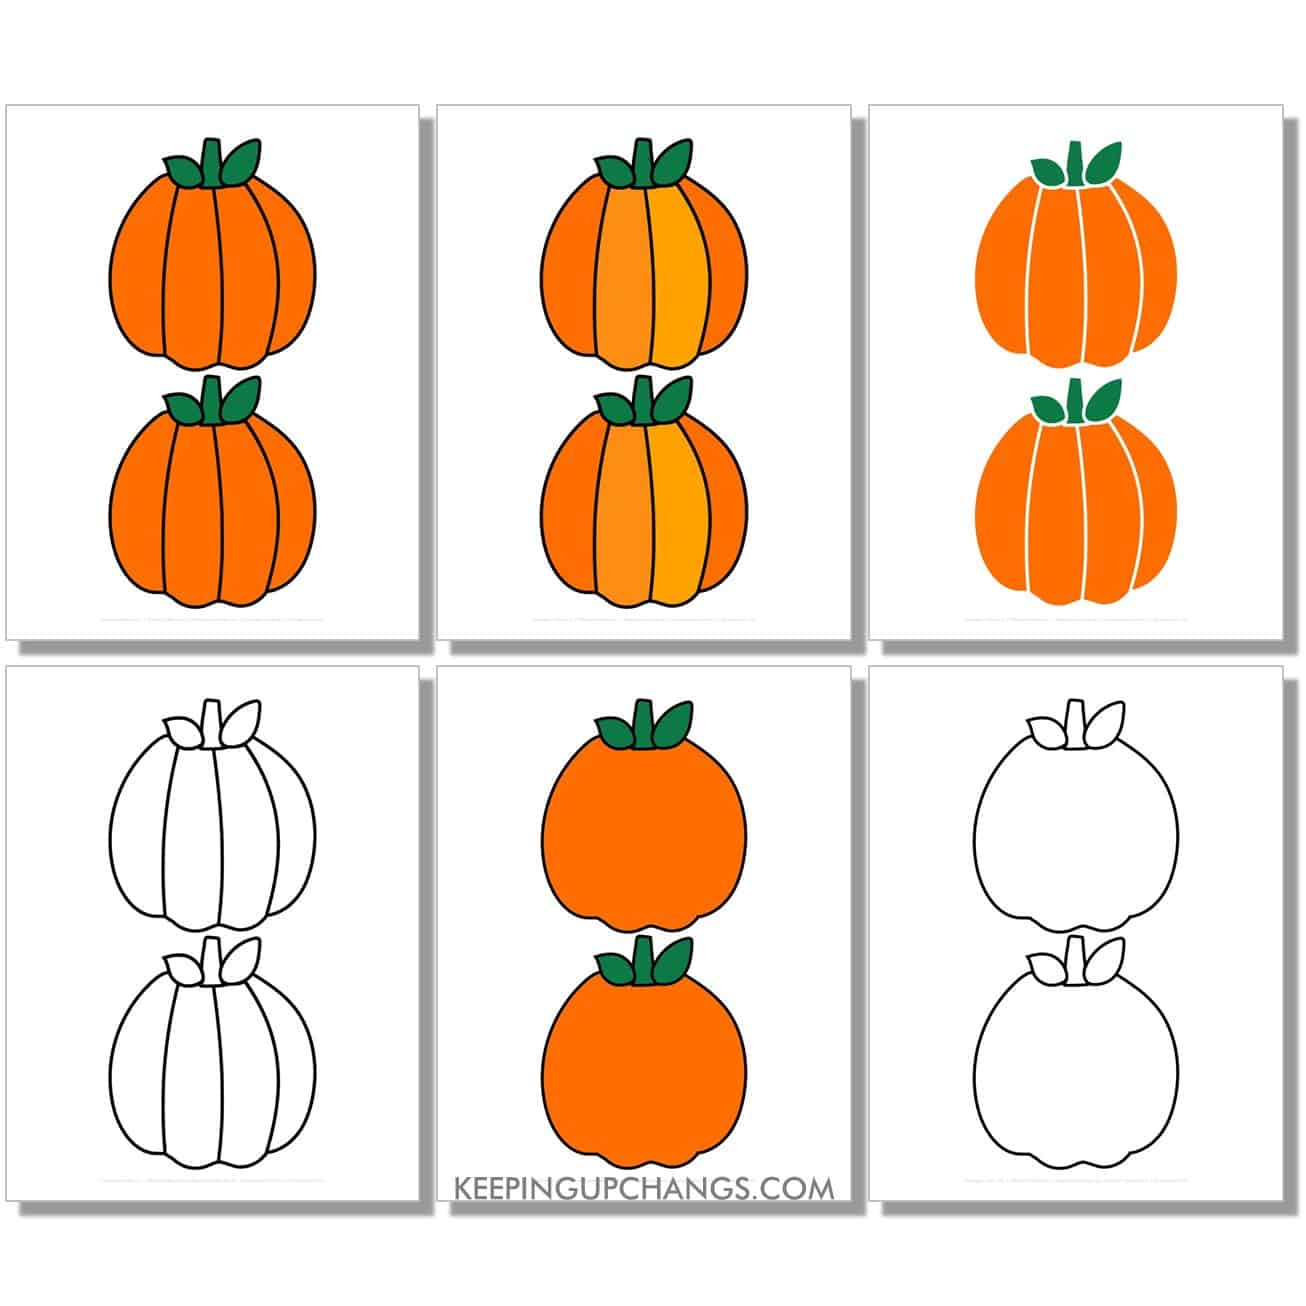 free medium round pumpkin in color, black and white, silhouette, 2 to a page.